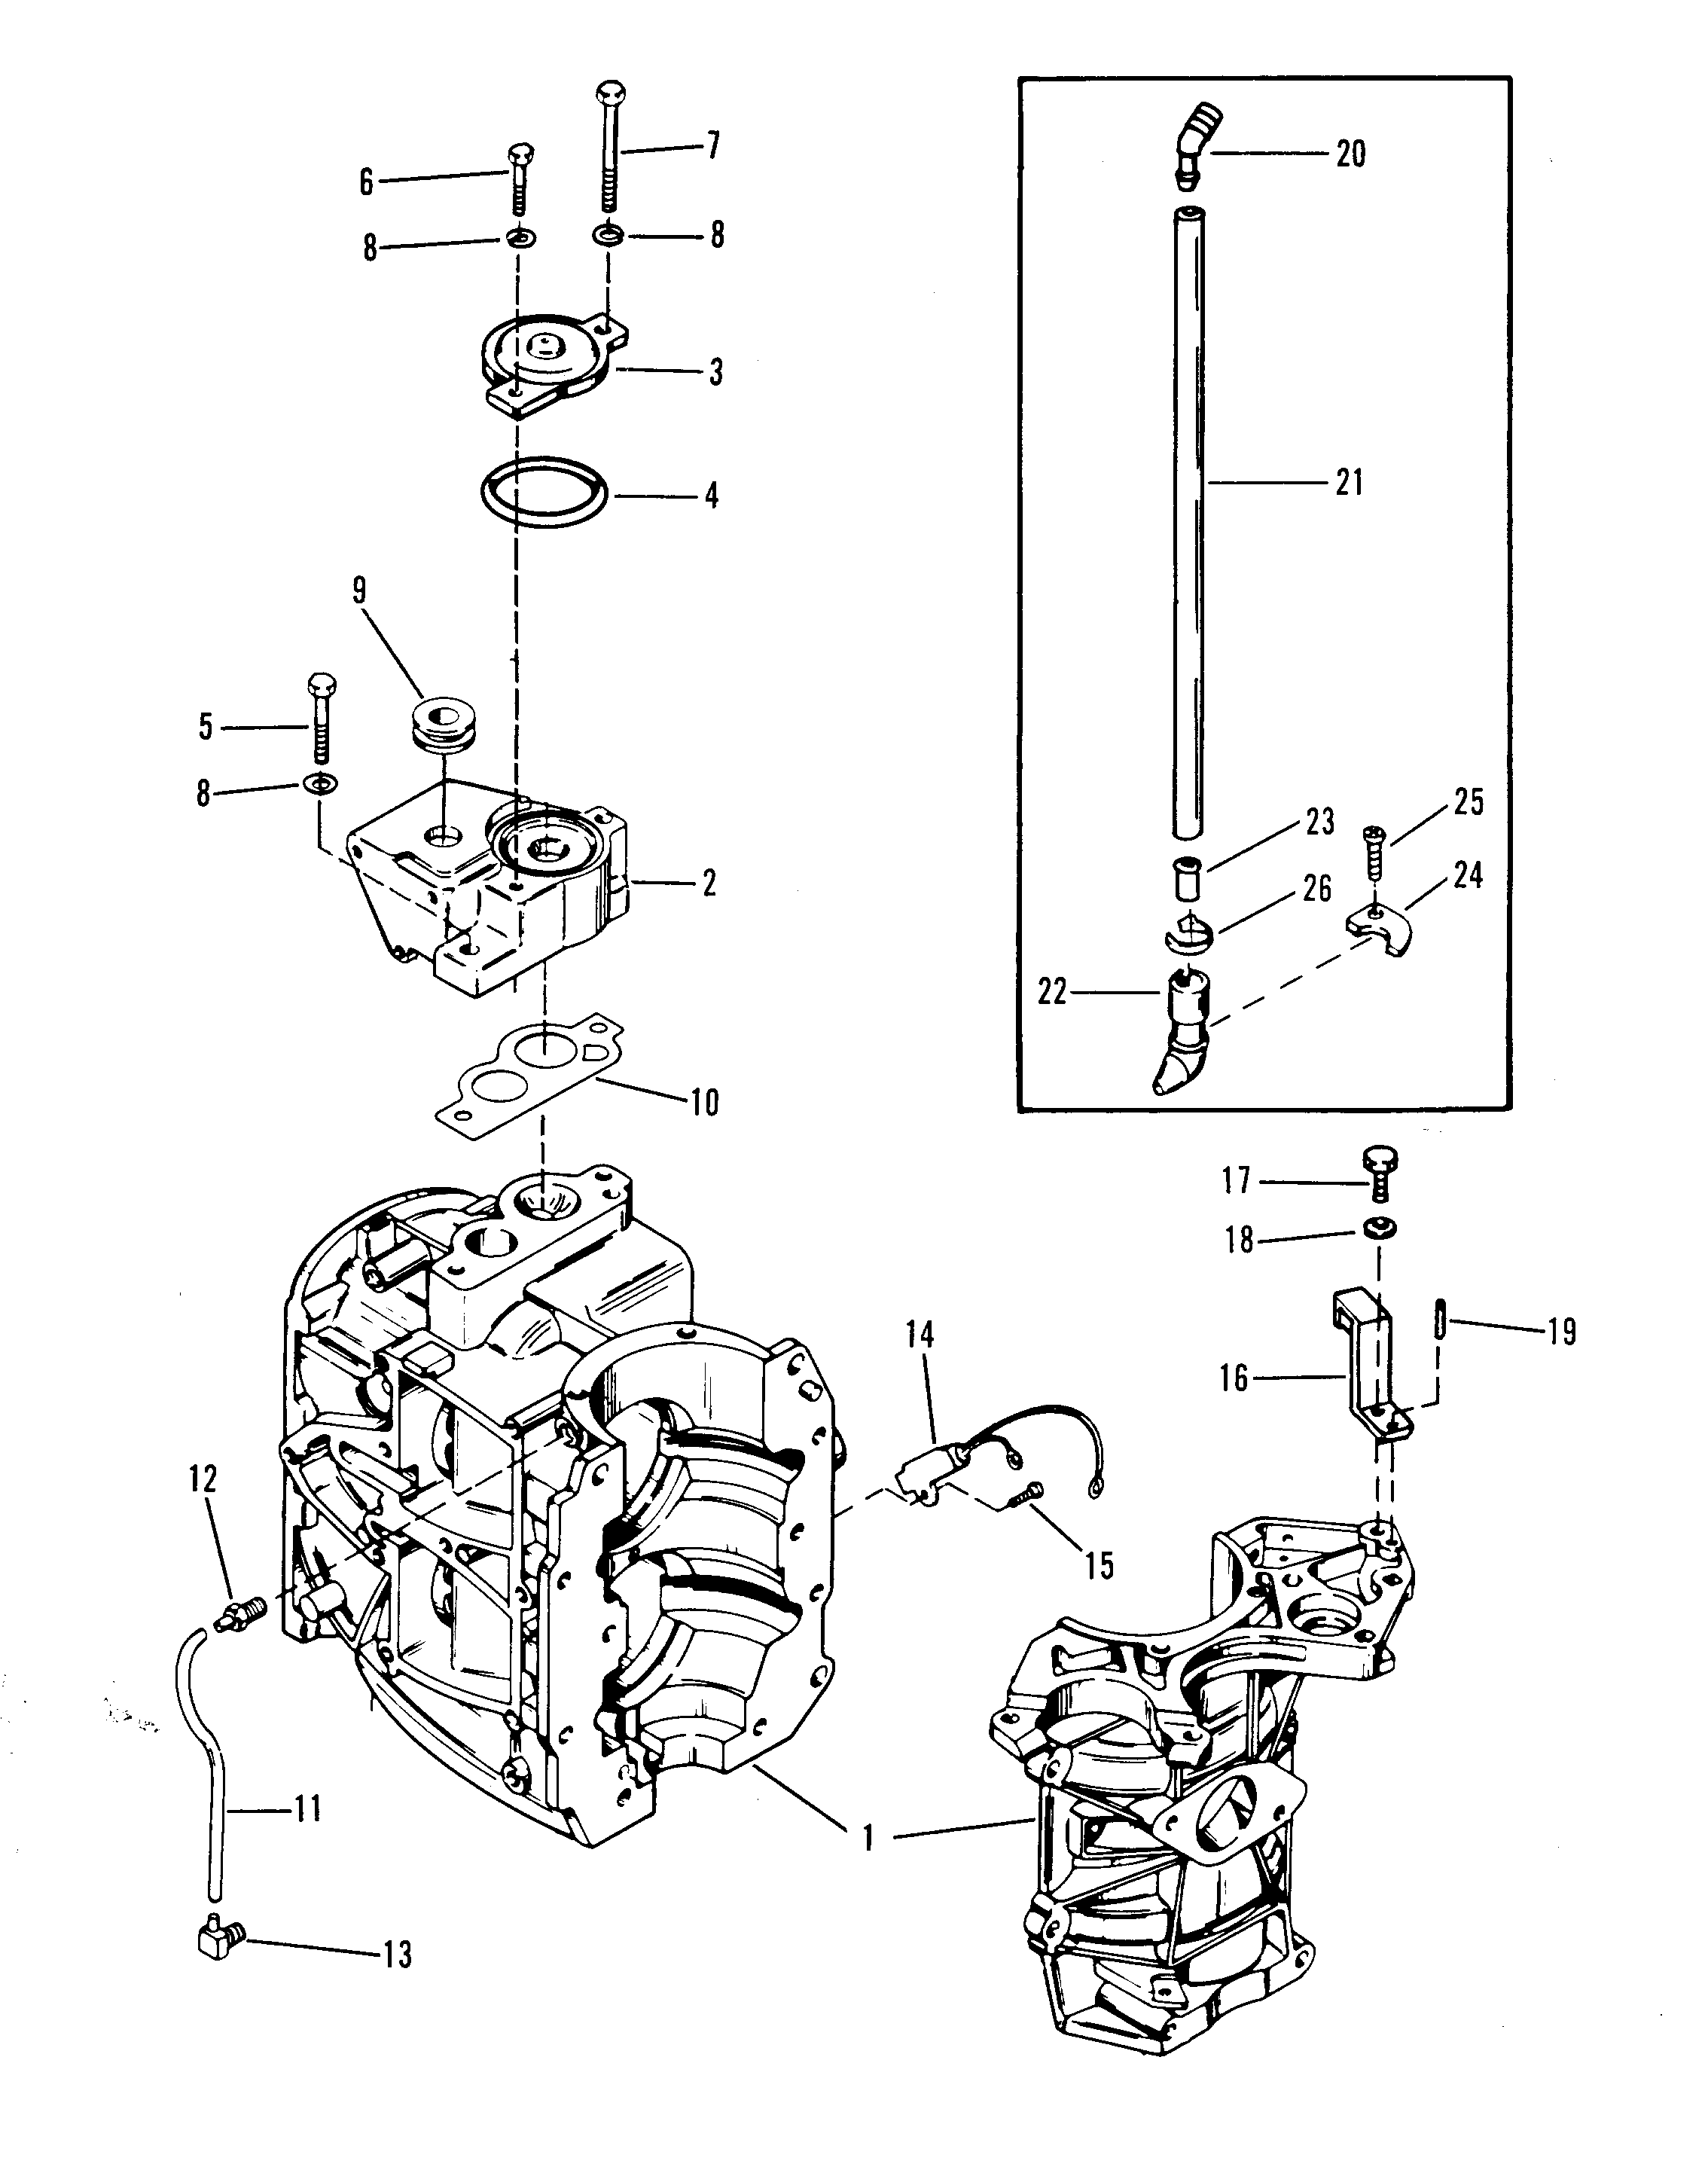 Mercury 35 9466647 And Up Cylinder Block Parts Diagram Thermostat Engine Car Component